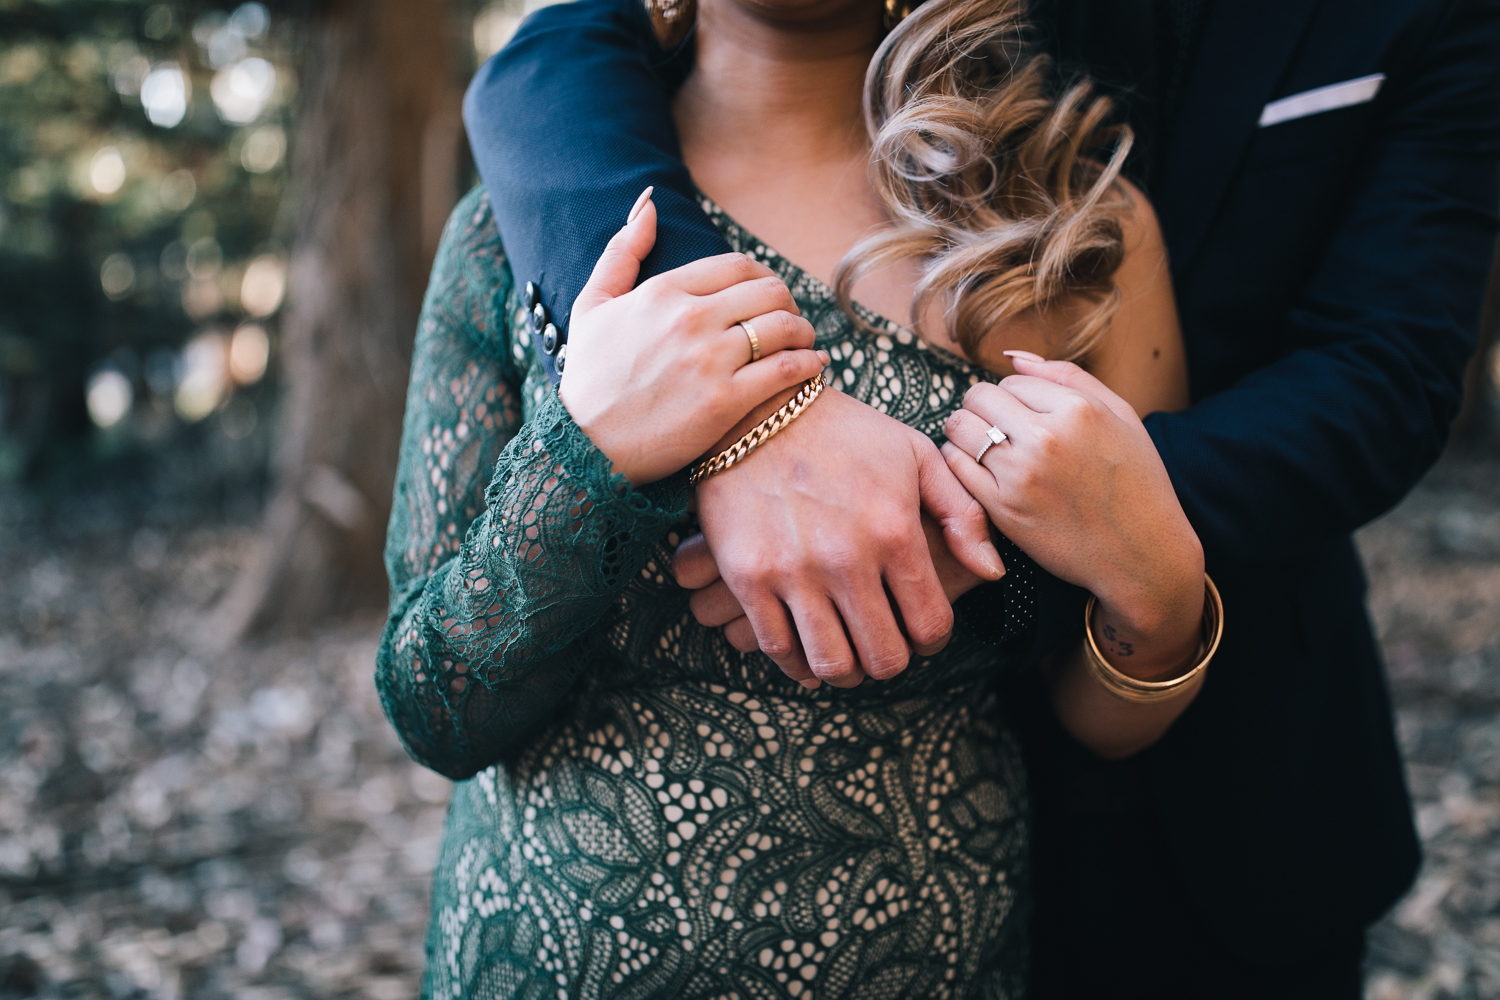 2018_11_ 042018.11.4 Leah + Ed Engagement Session Blog photos Edited For Web 0036.jpg